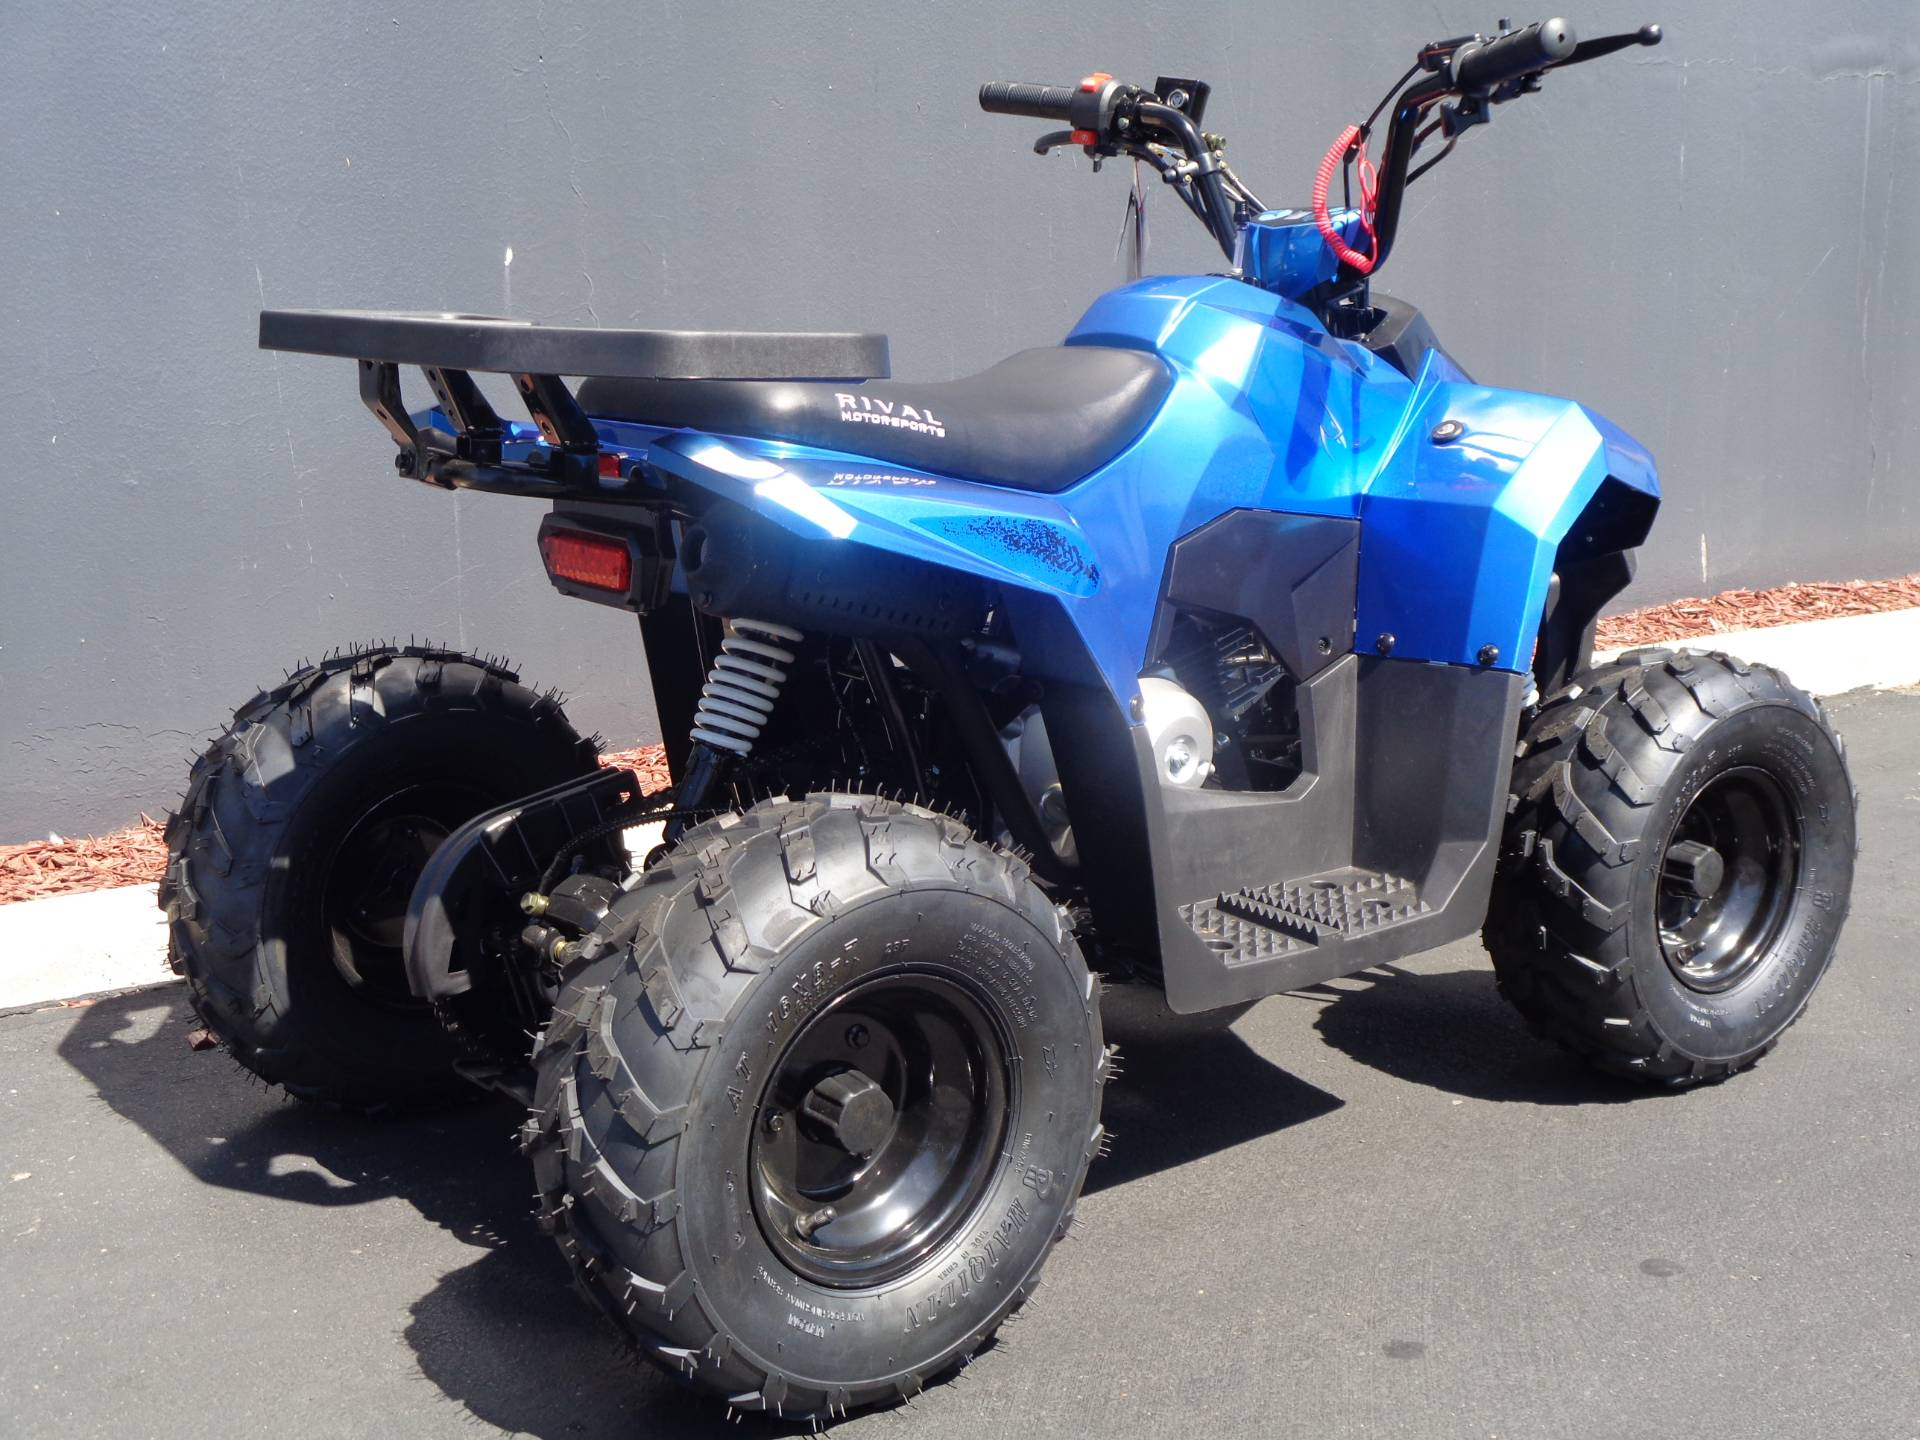 2019 Rival Motorsports CA MudHawk 6 in Chula Vista, California - Photo 3